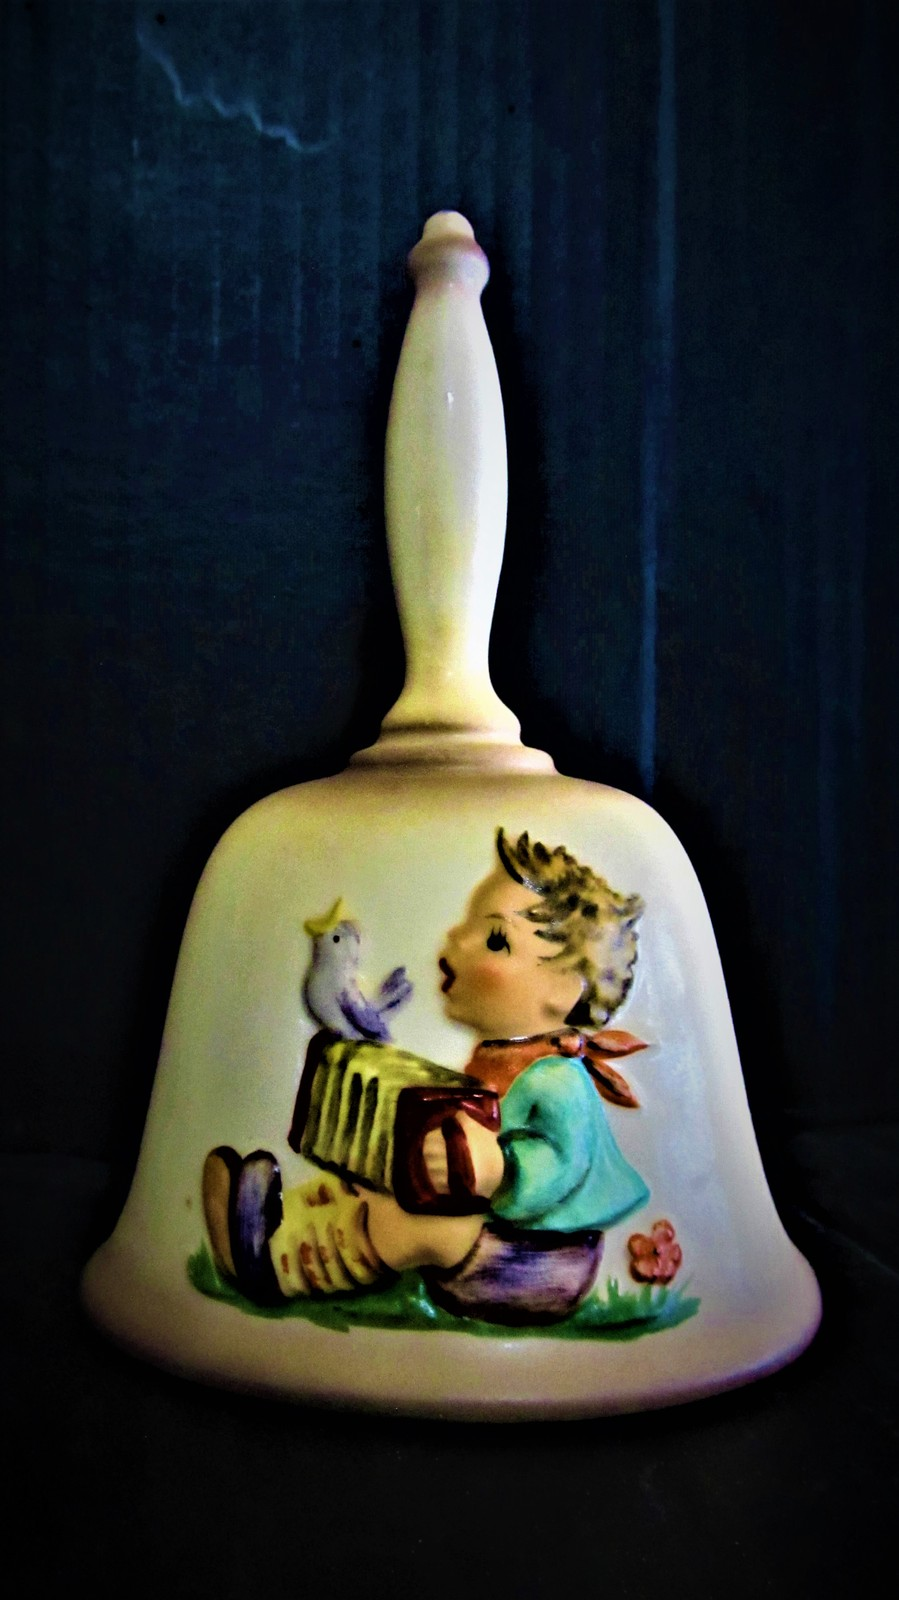 M. J. Hummel Annual Christmas Bell in bas-relief 1978 - $24.99